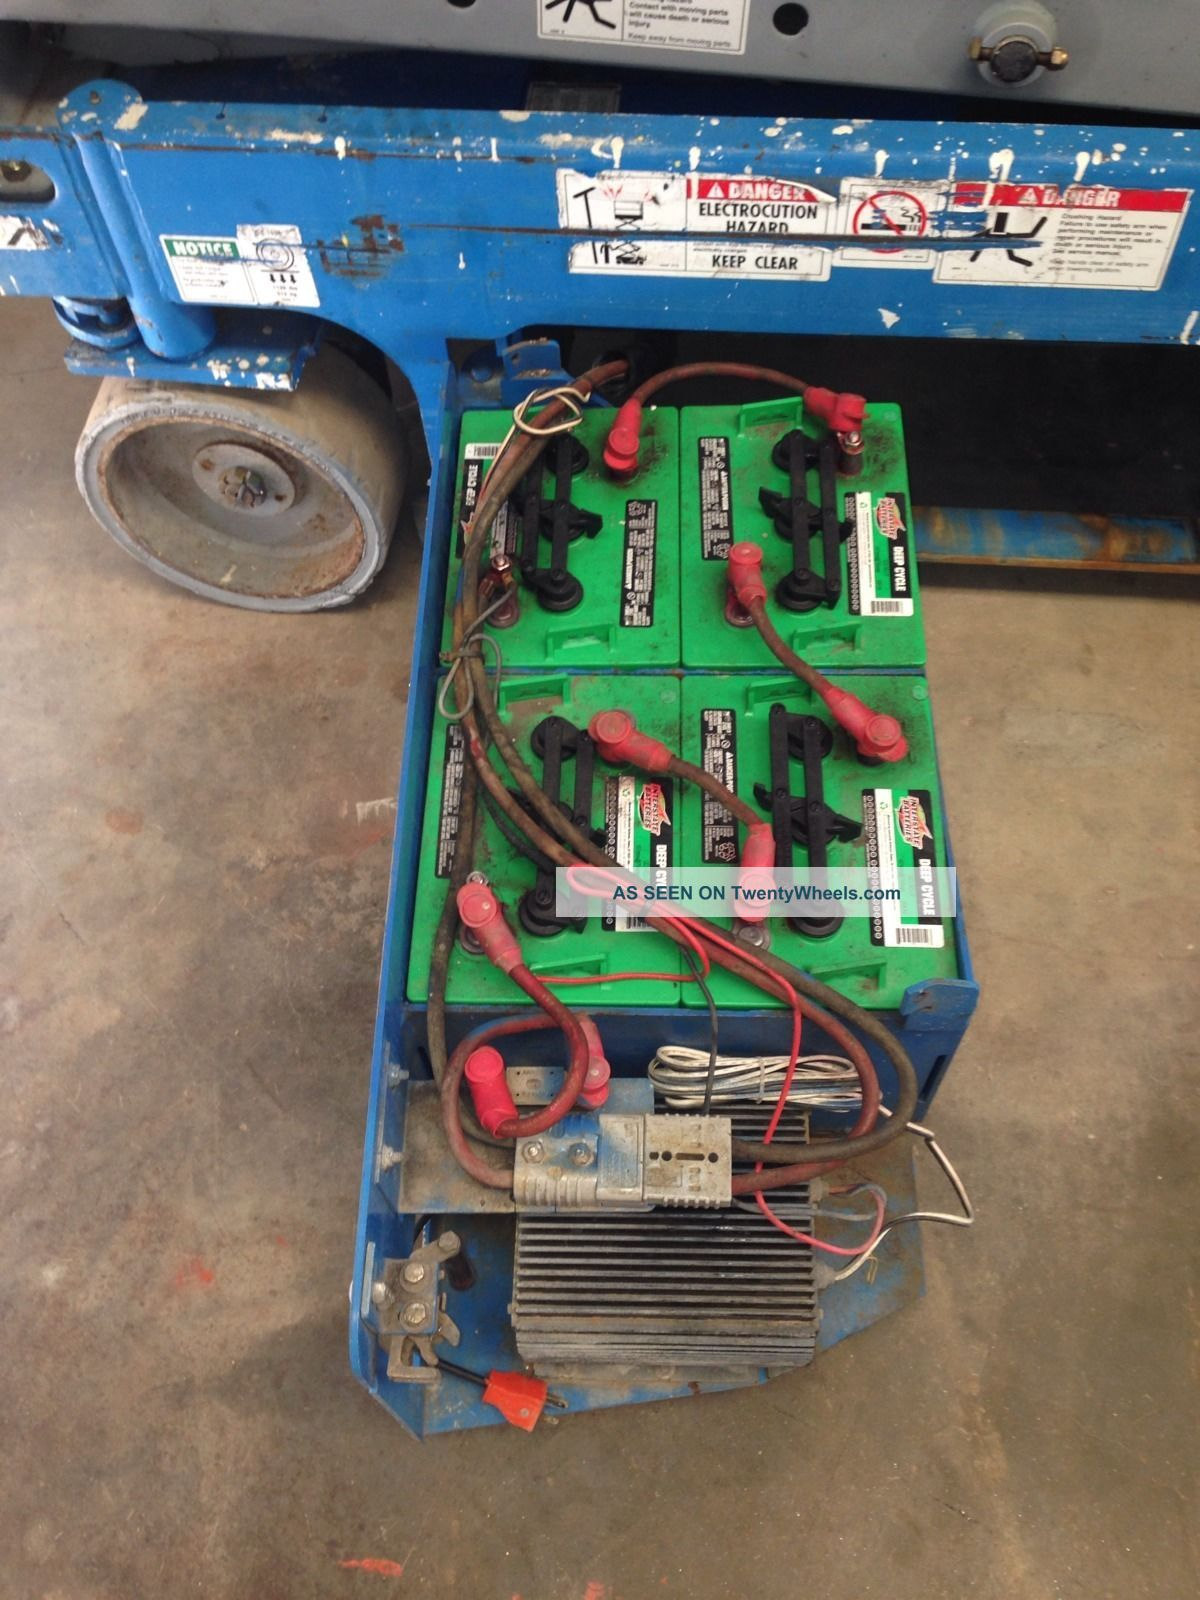 2005 C4500 Wiring Diagram Library Gmc Upright Scissor Lift Battery Hook Up Auto Electrical Ez Harness